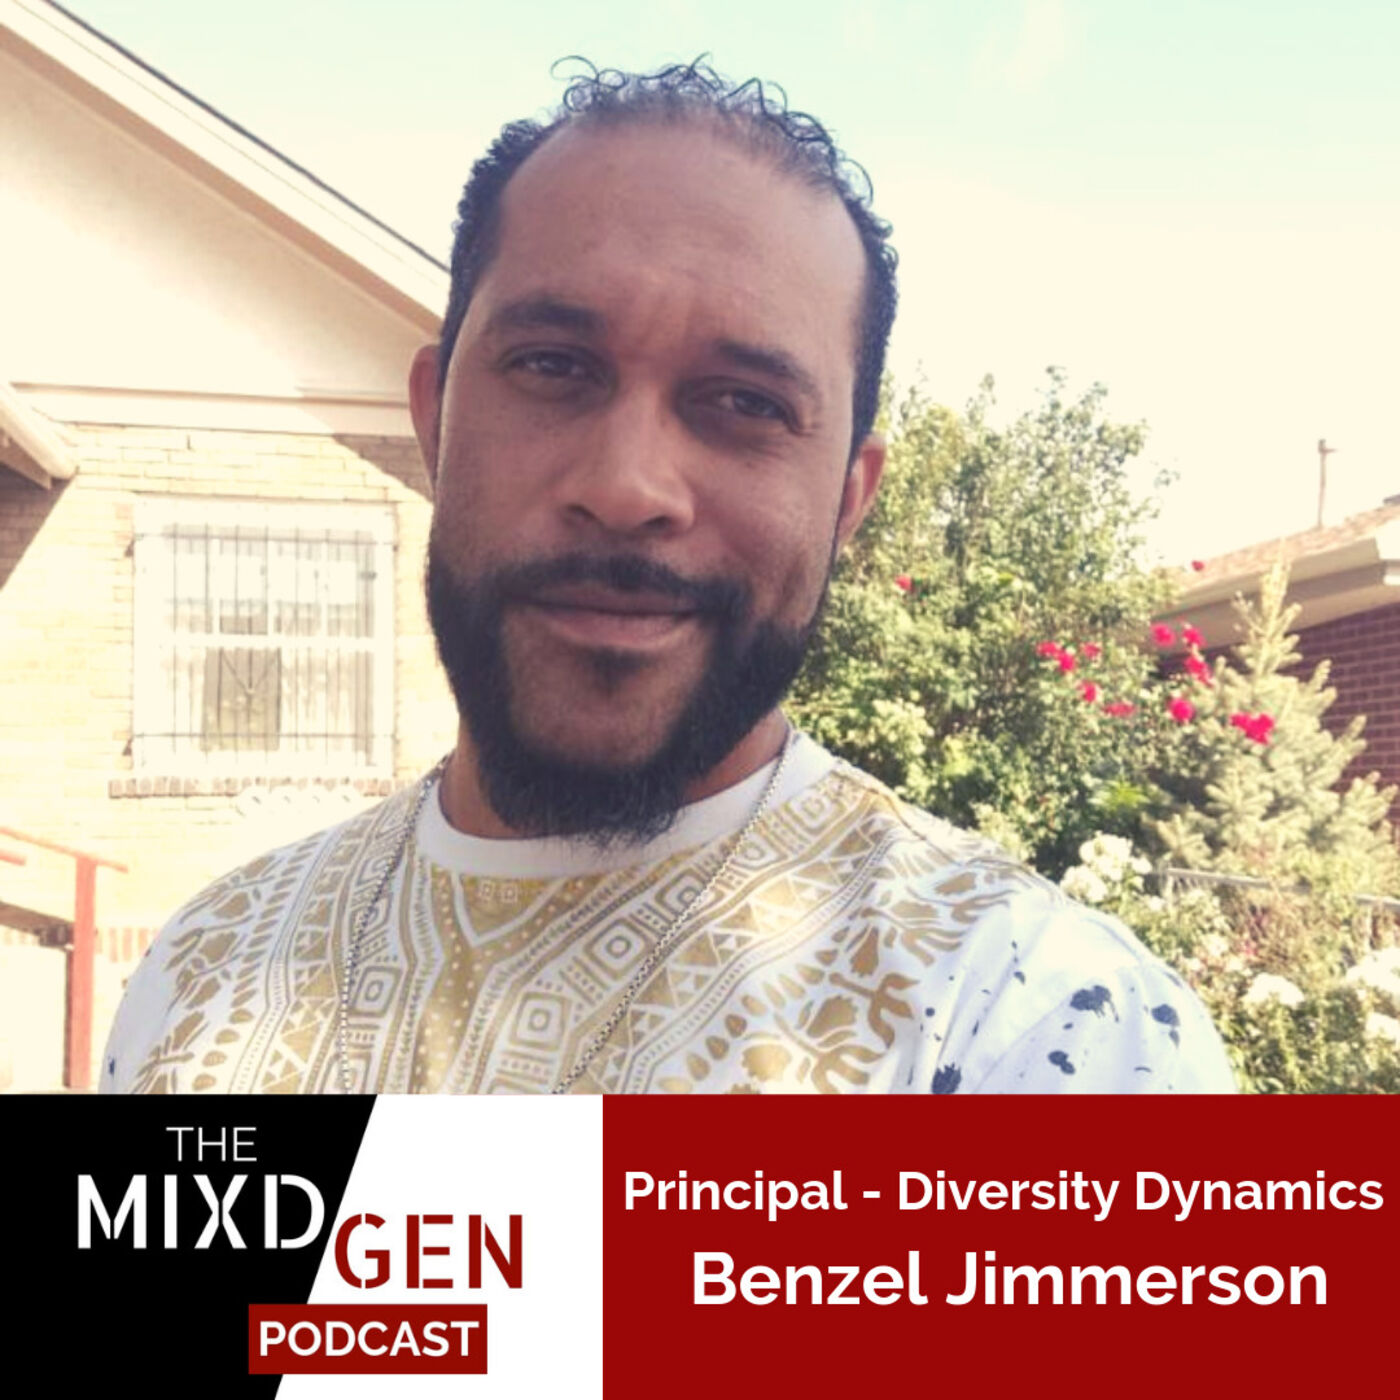 African born in America: Benzel Jimmerson